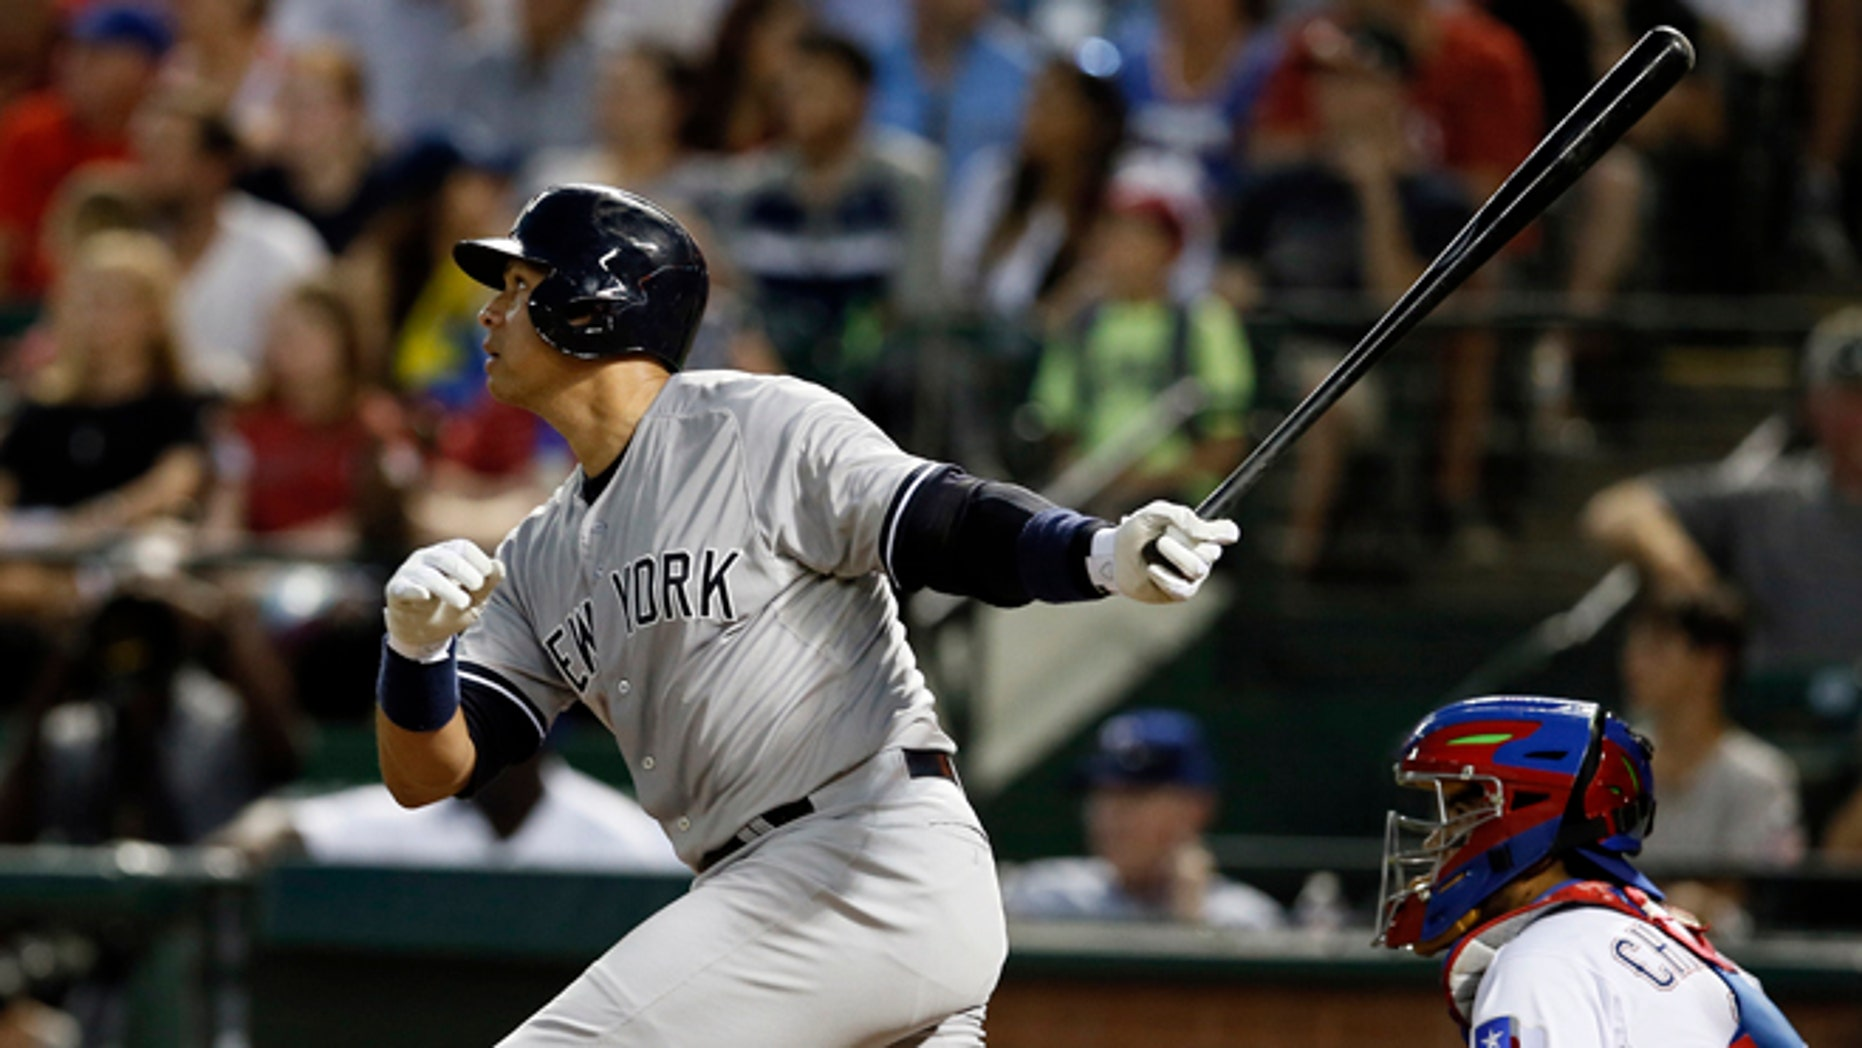 New York Yankees' Alex Rodriguez follows through on a solo home run swing off a pitch from Texas Rangers' Matt Harrison as Rangers catcher Robinson Chirinos watches in the sixth inning of a baseball game Monday,July 27, 2015, in Arlington, Texas. (AP Photo/Tony Gutierrez)